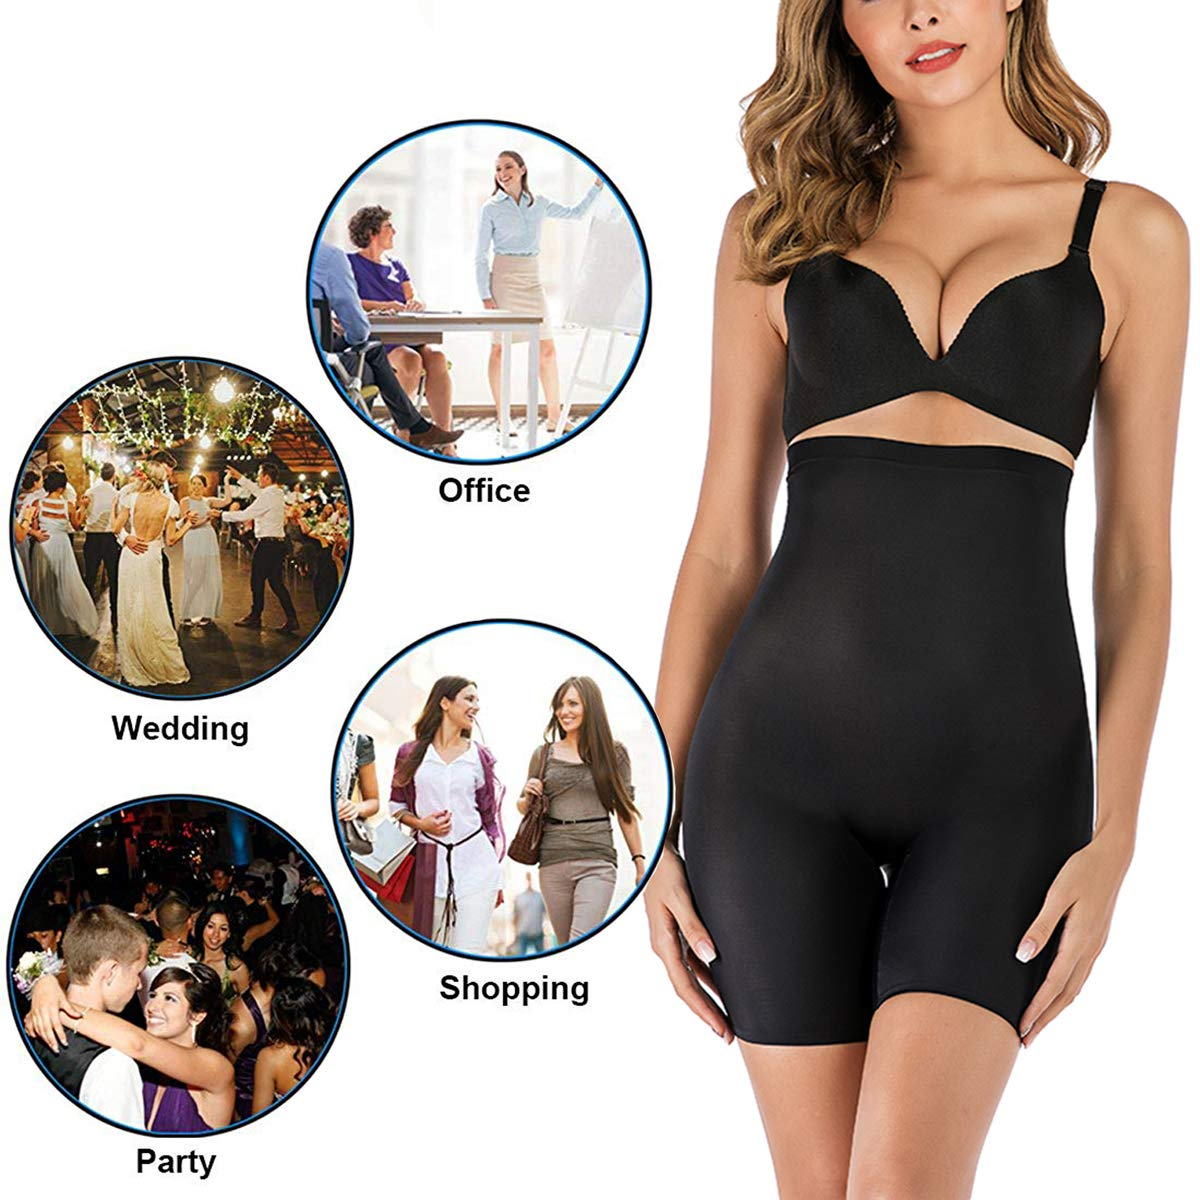 FUT Women Butt Lifter Body Shaper Tummy Control Panties Enhancer Underwear Boy Shorts